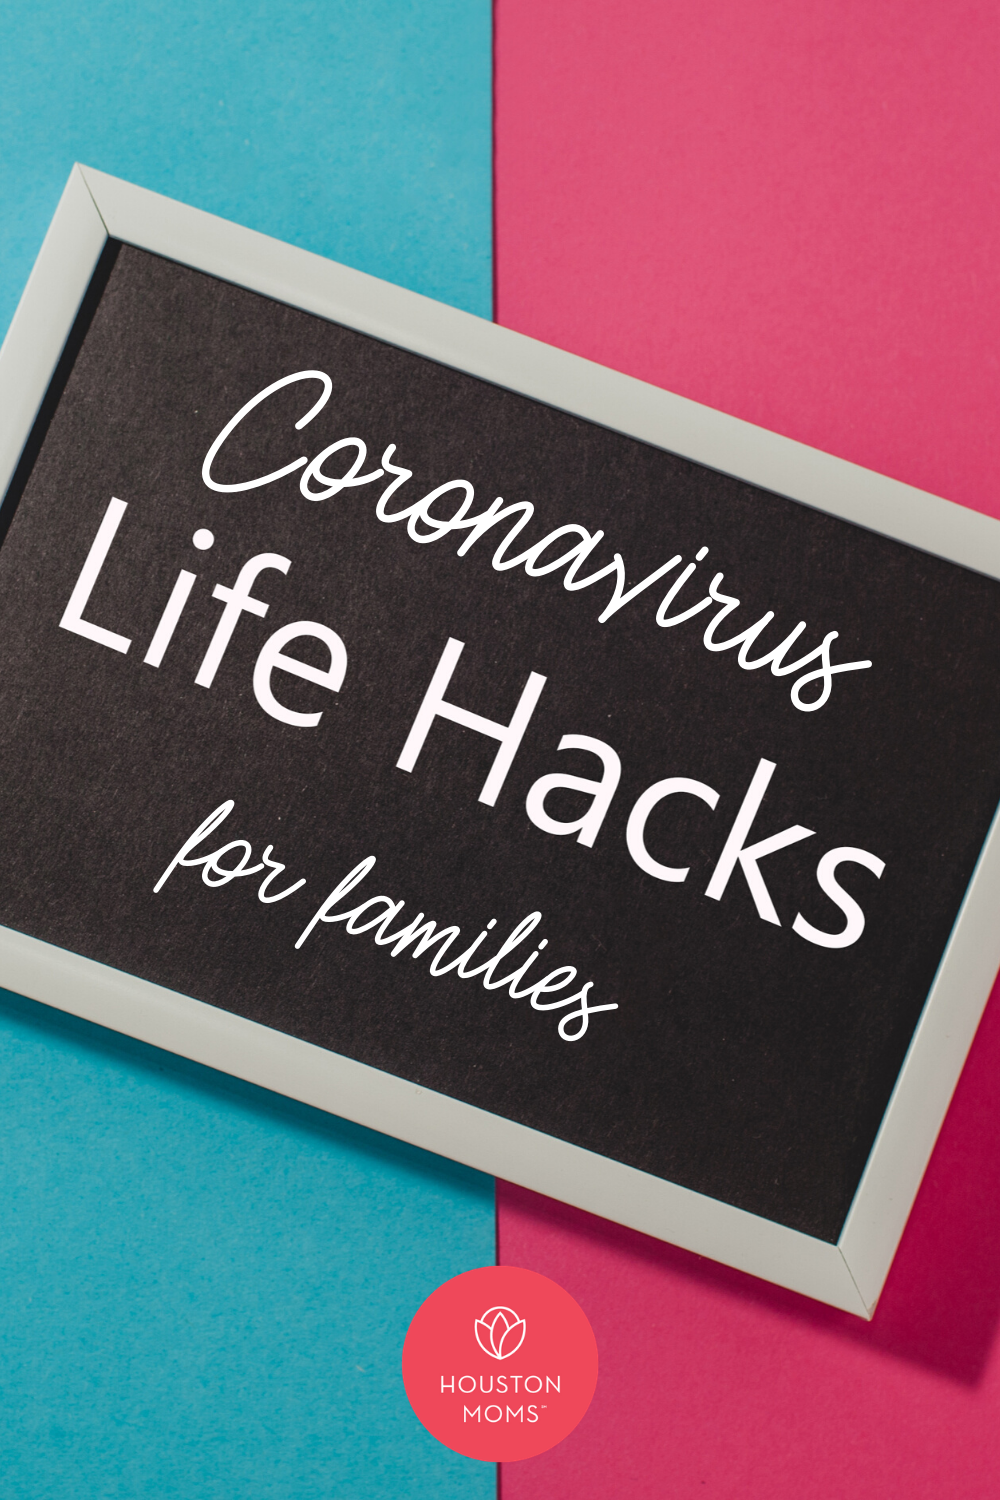 "Houston Moms ""Coronavirus Life Hacks for families"" #houstonmoms #houstonmomsblog #momsaroundhouston"